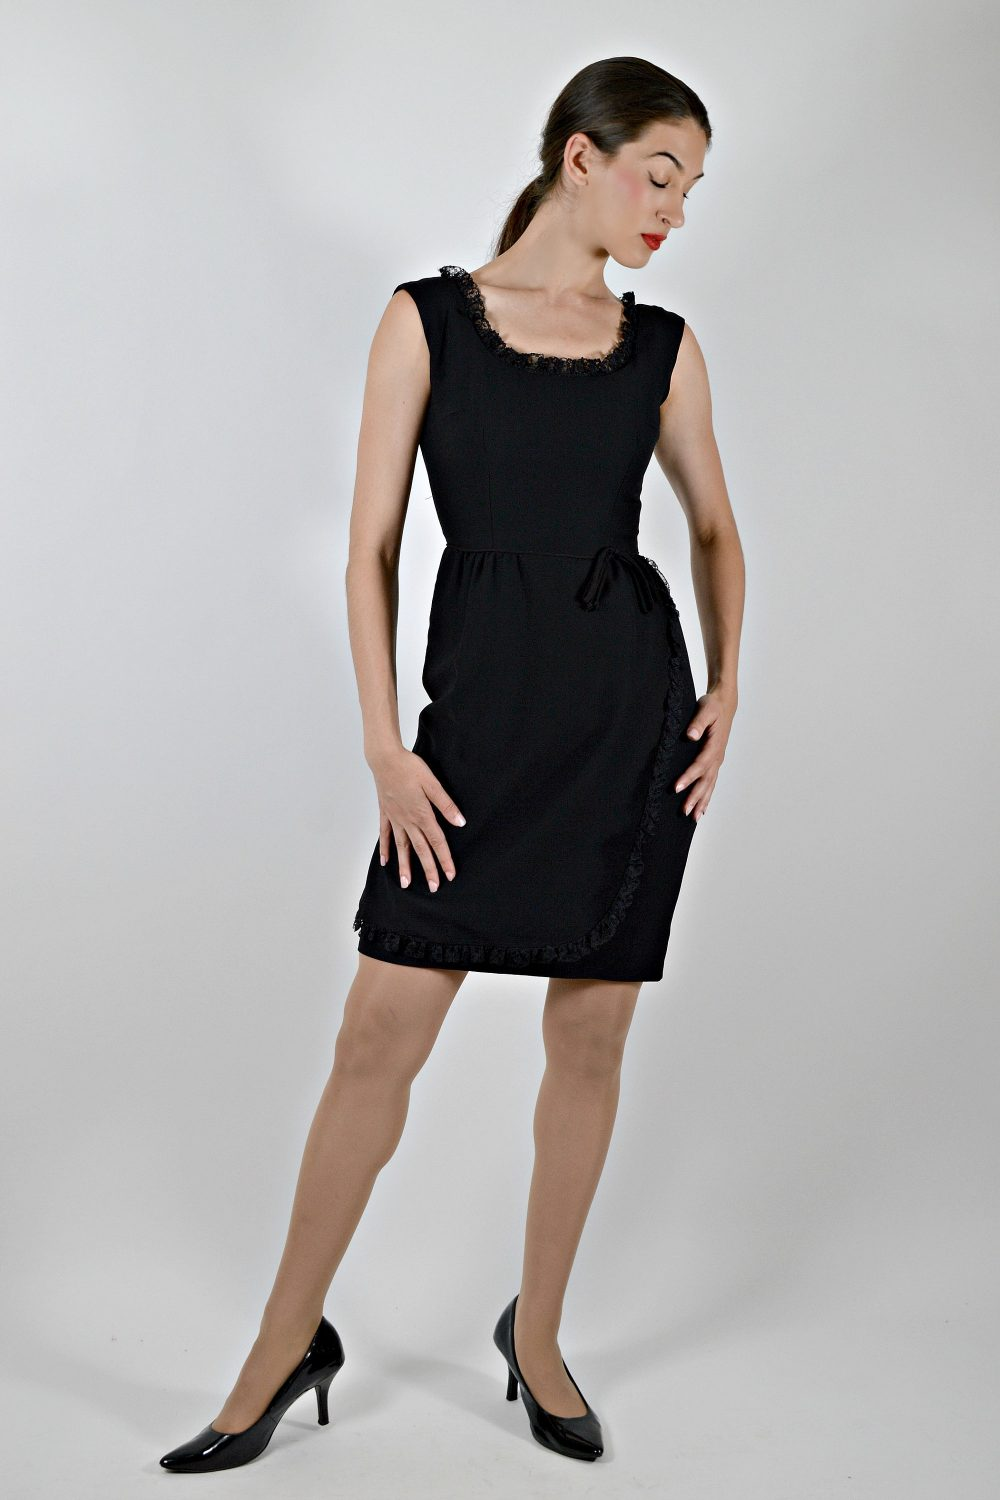 50S Black Pencil Dress, Sleeveless Fitted Pin Up Wiggle Size Medium, Audrey Hepburn Style, Faux Wrap Dress